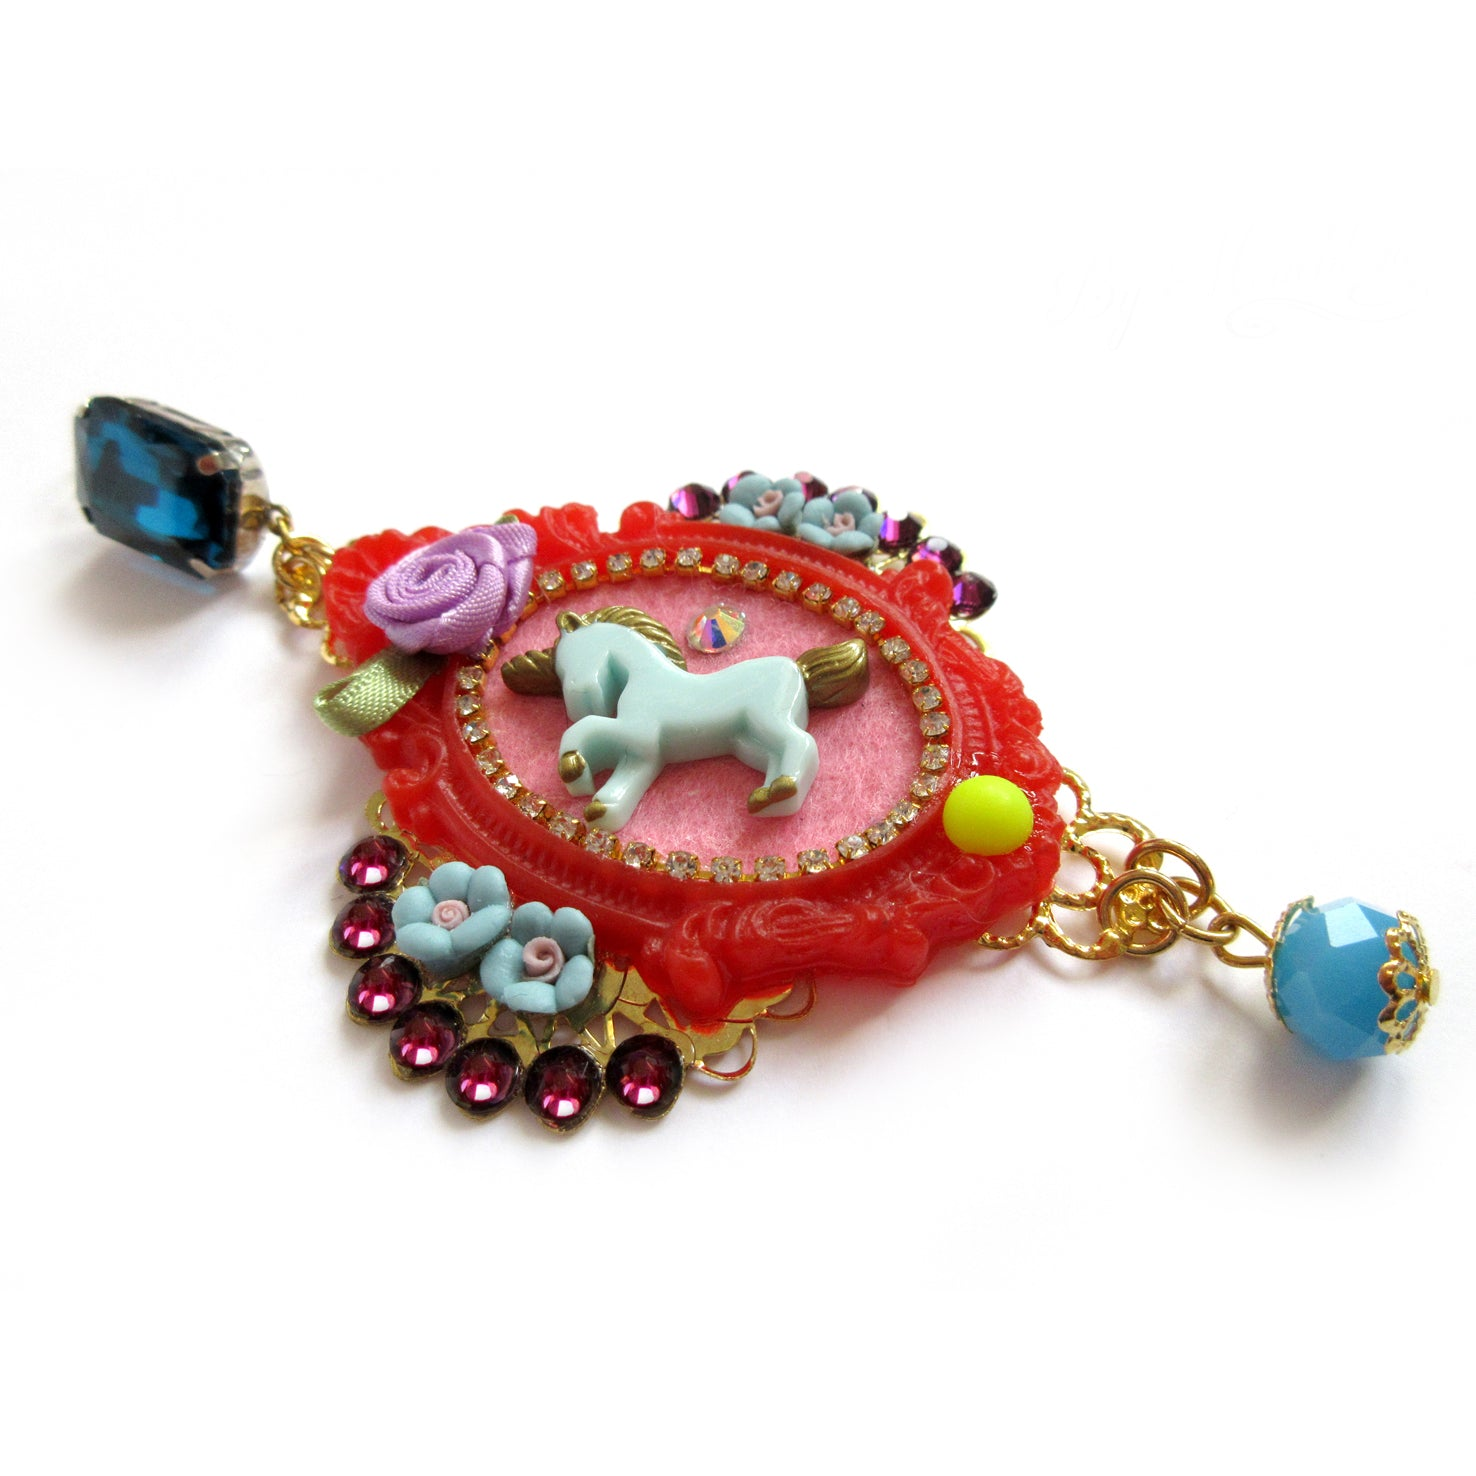 mouchkine jewelry couture and trendy pink unicorn pendant earrings. Made in france.